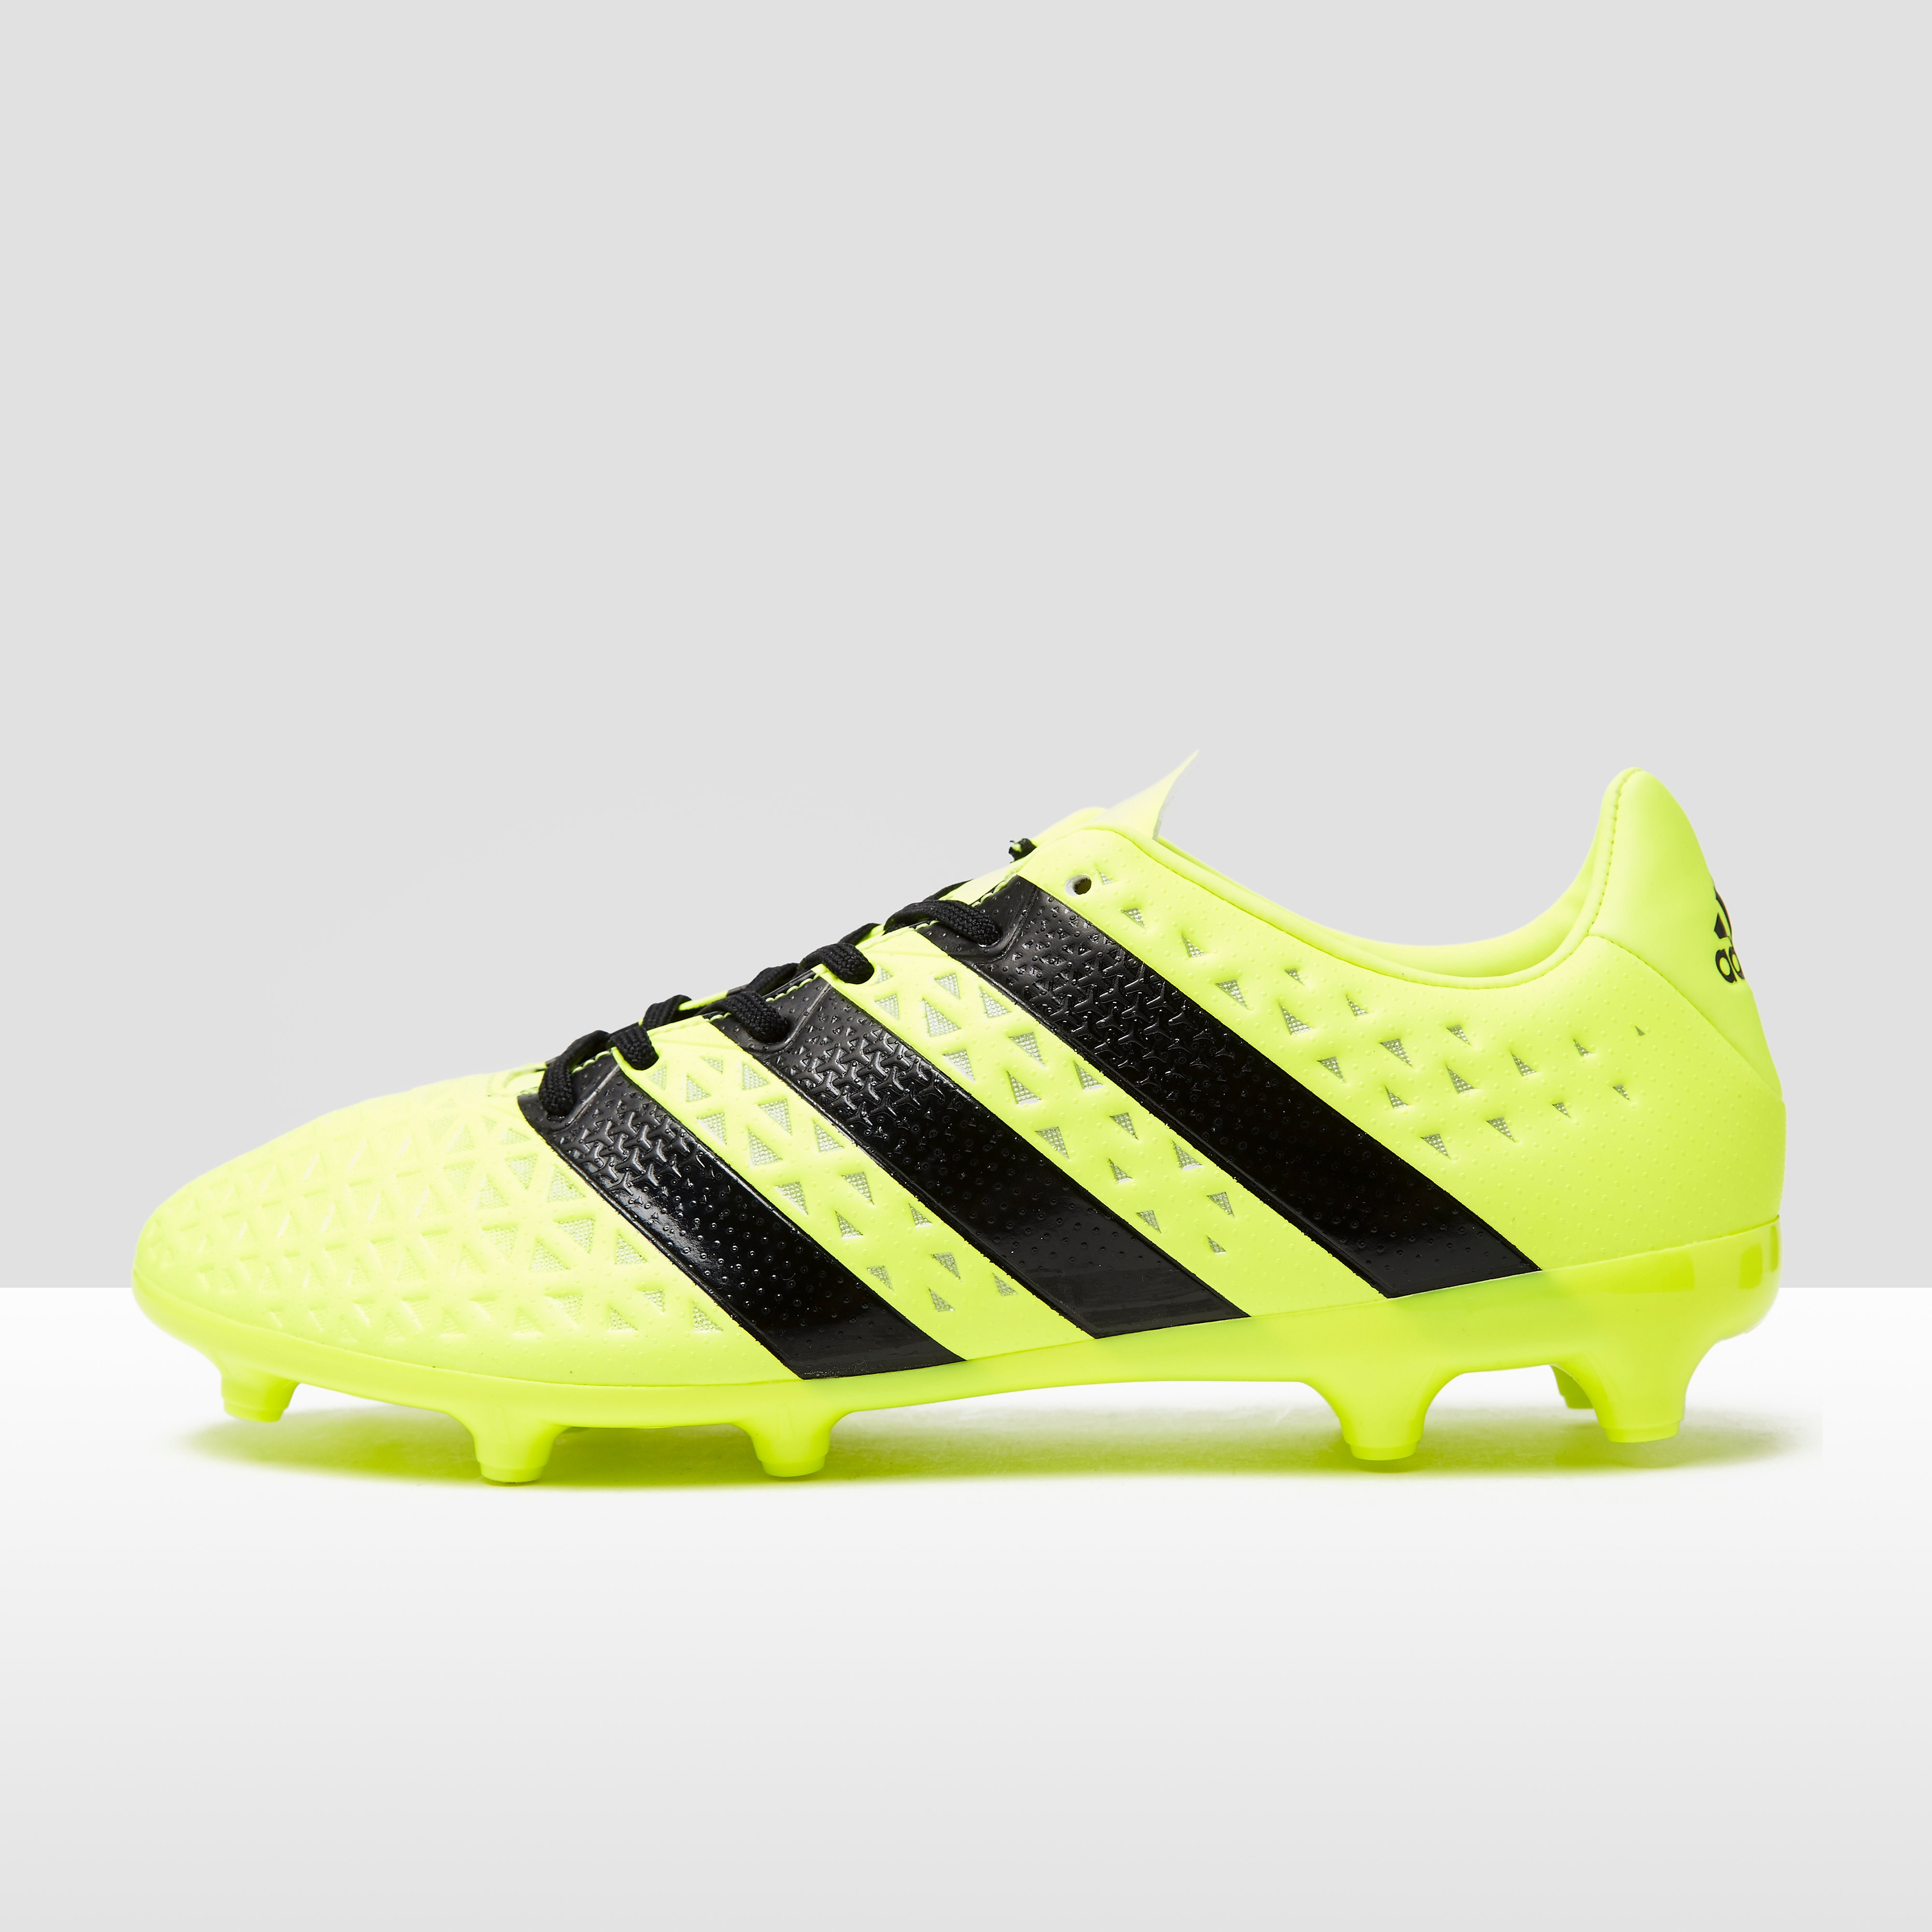 adidas Ace 16.3 Firm Ground Football Boots